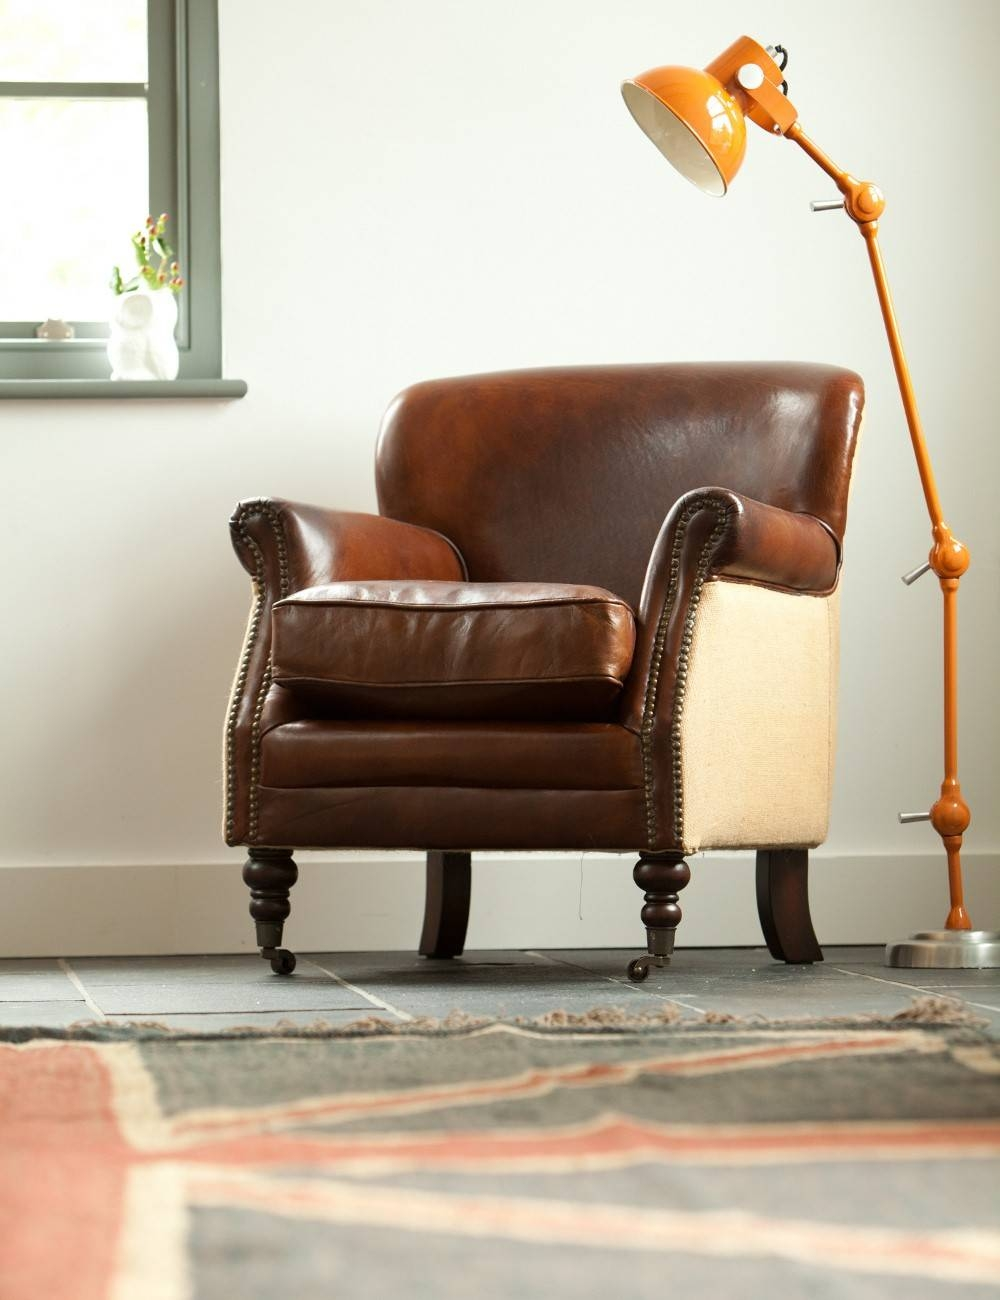 Distressed Vintage Leather Sofas & Armchairs | Rose & Grey within Vintage Leather Armchairs (Image 5 of 30)